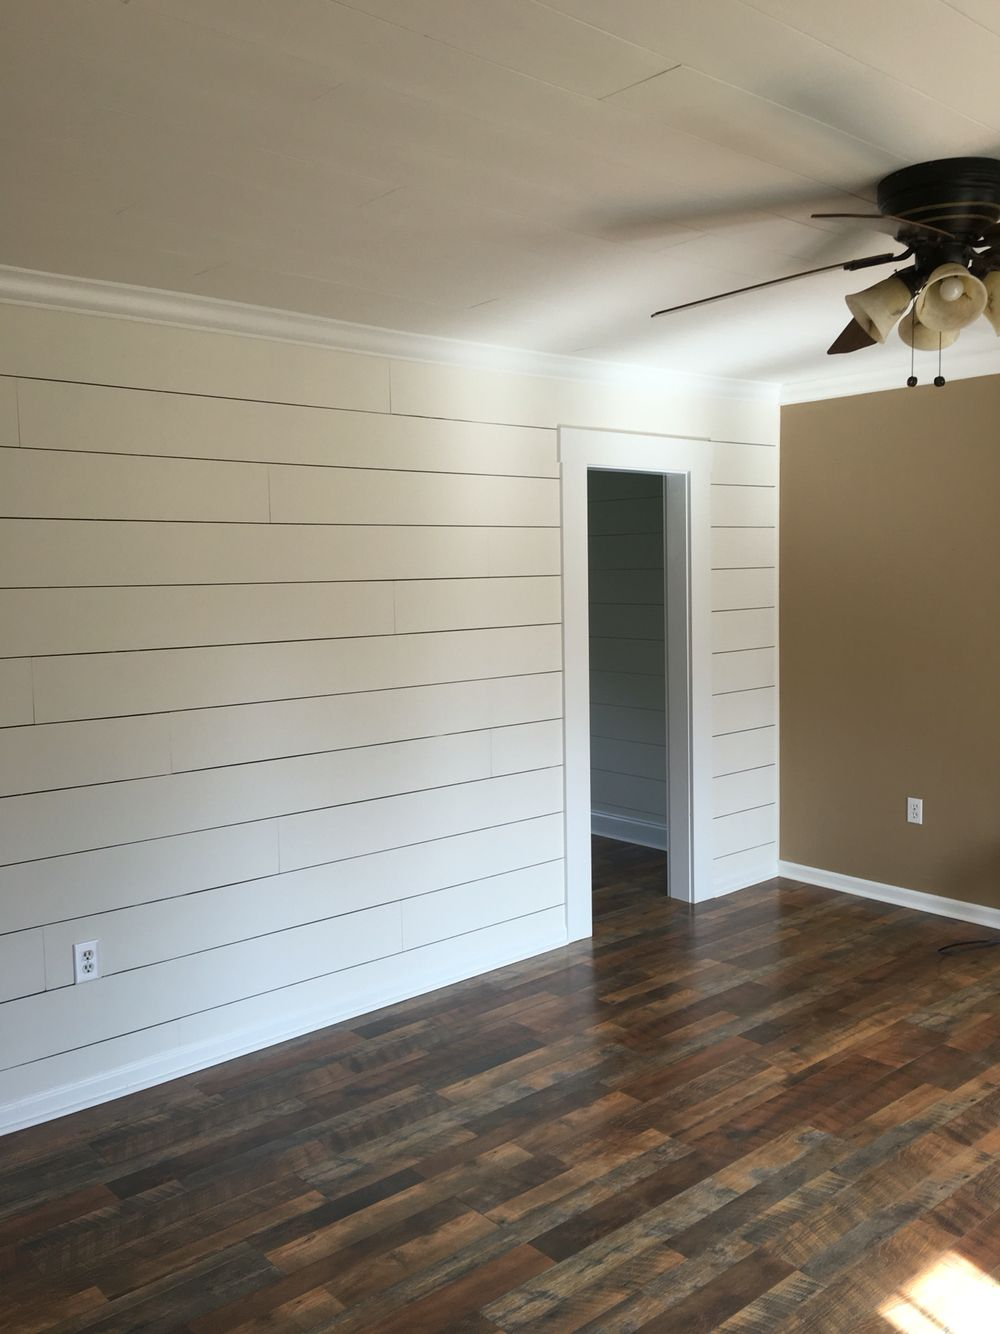 Client Remodel Faux Shiplap Wall With Larger 1 8 Spacing And Pergo Max Flooring In River Road Oak Ship Lap Walls White Shiplap Wall Shiplap Accent Wall